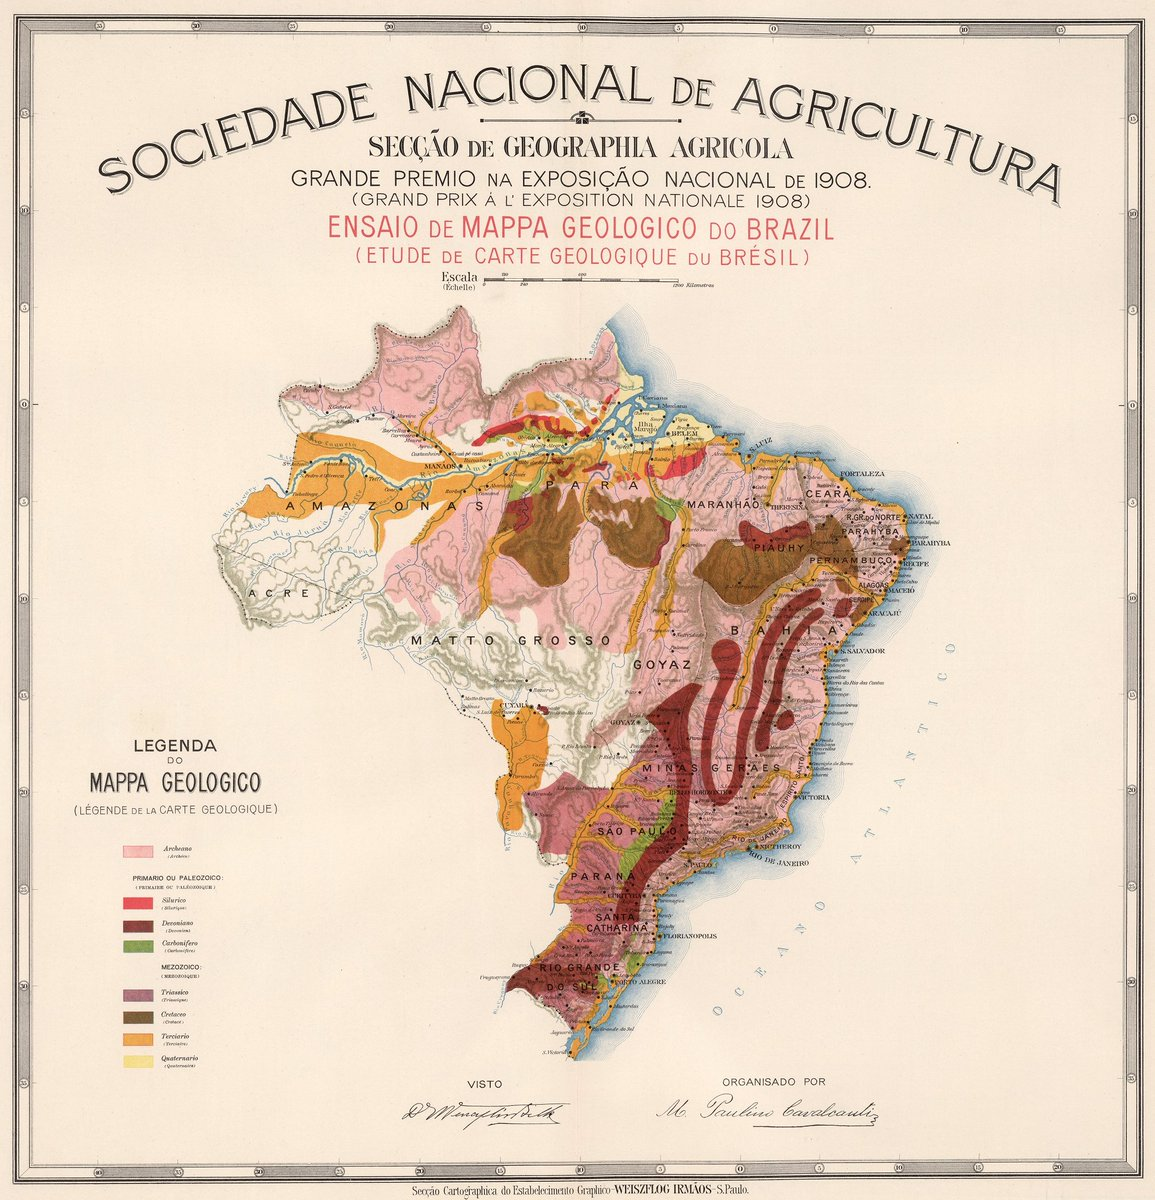 Picture of: I Fucking Love Maps On Twitter Geological Map Of Brazil Shows Administrative Divisions Rivers Forests And Mountains 1908 Source Https T Co Evbsdww7yc Https T Co Of4q8mwhdm